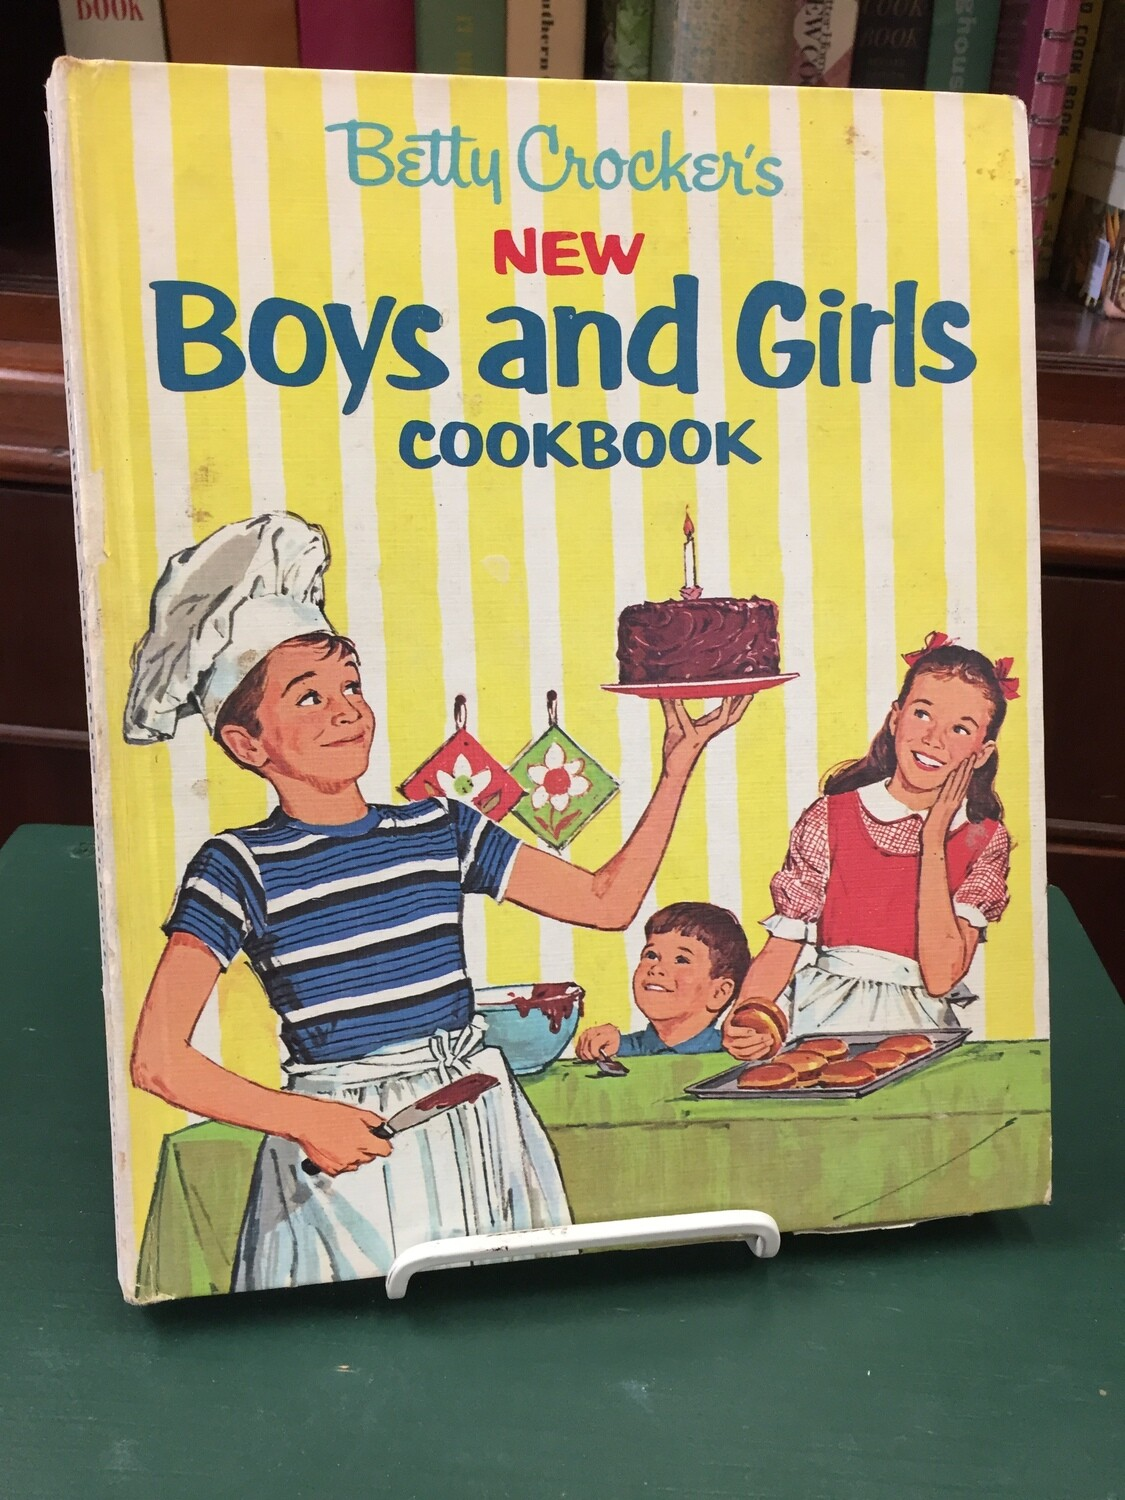 New Boys and Girls Cookbook